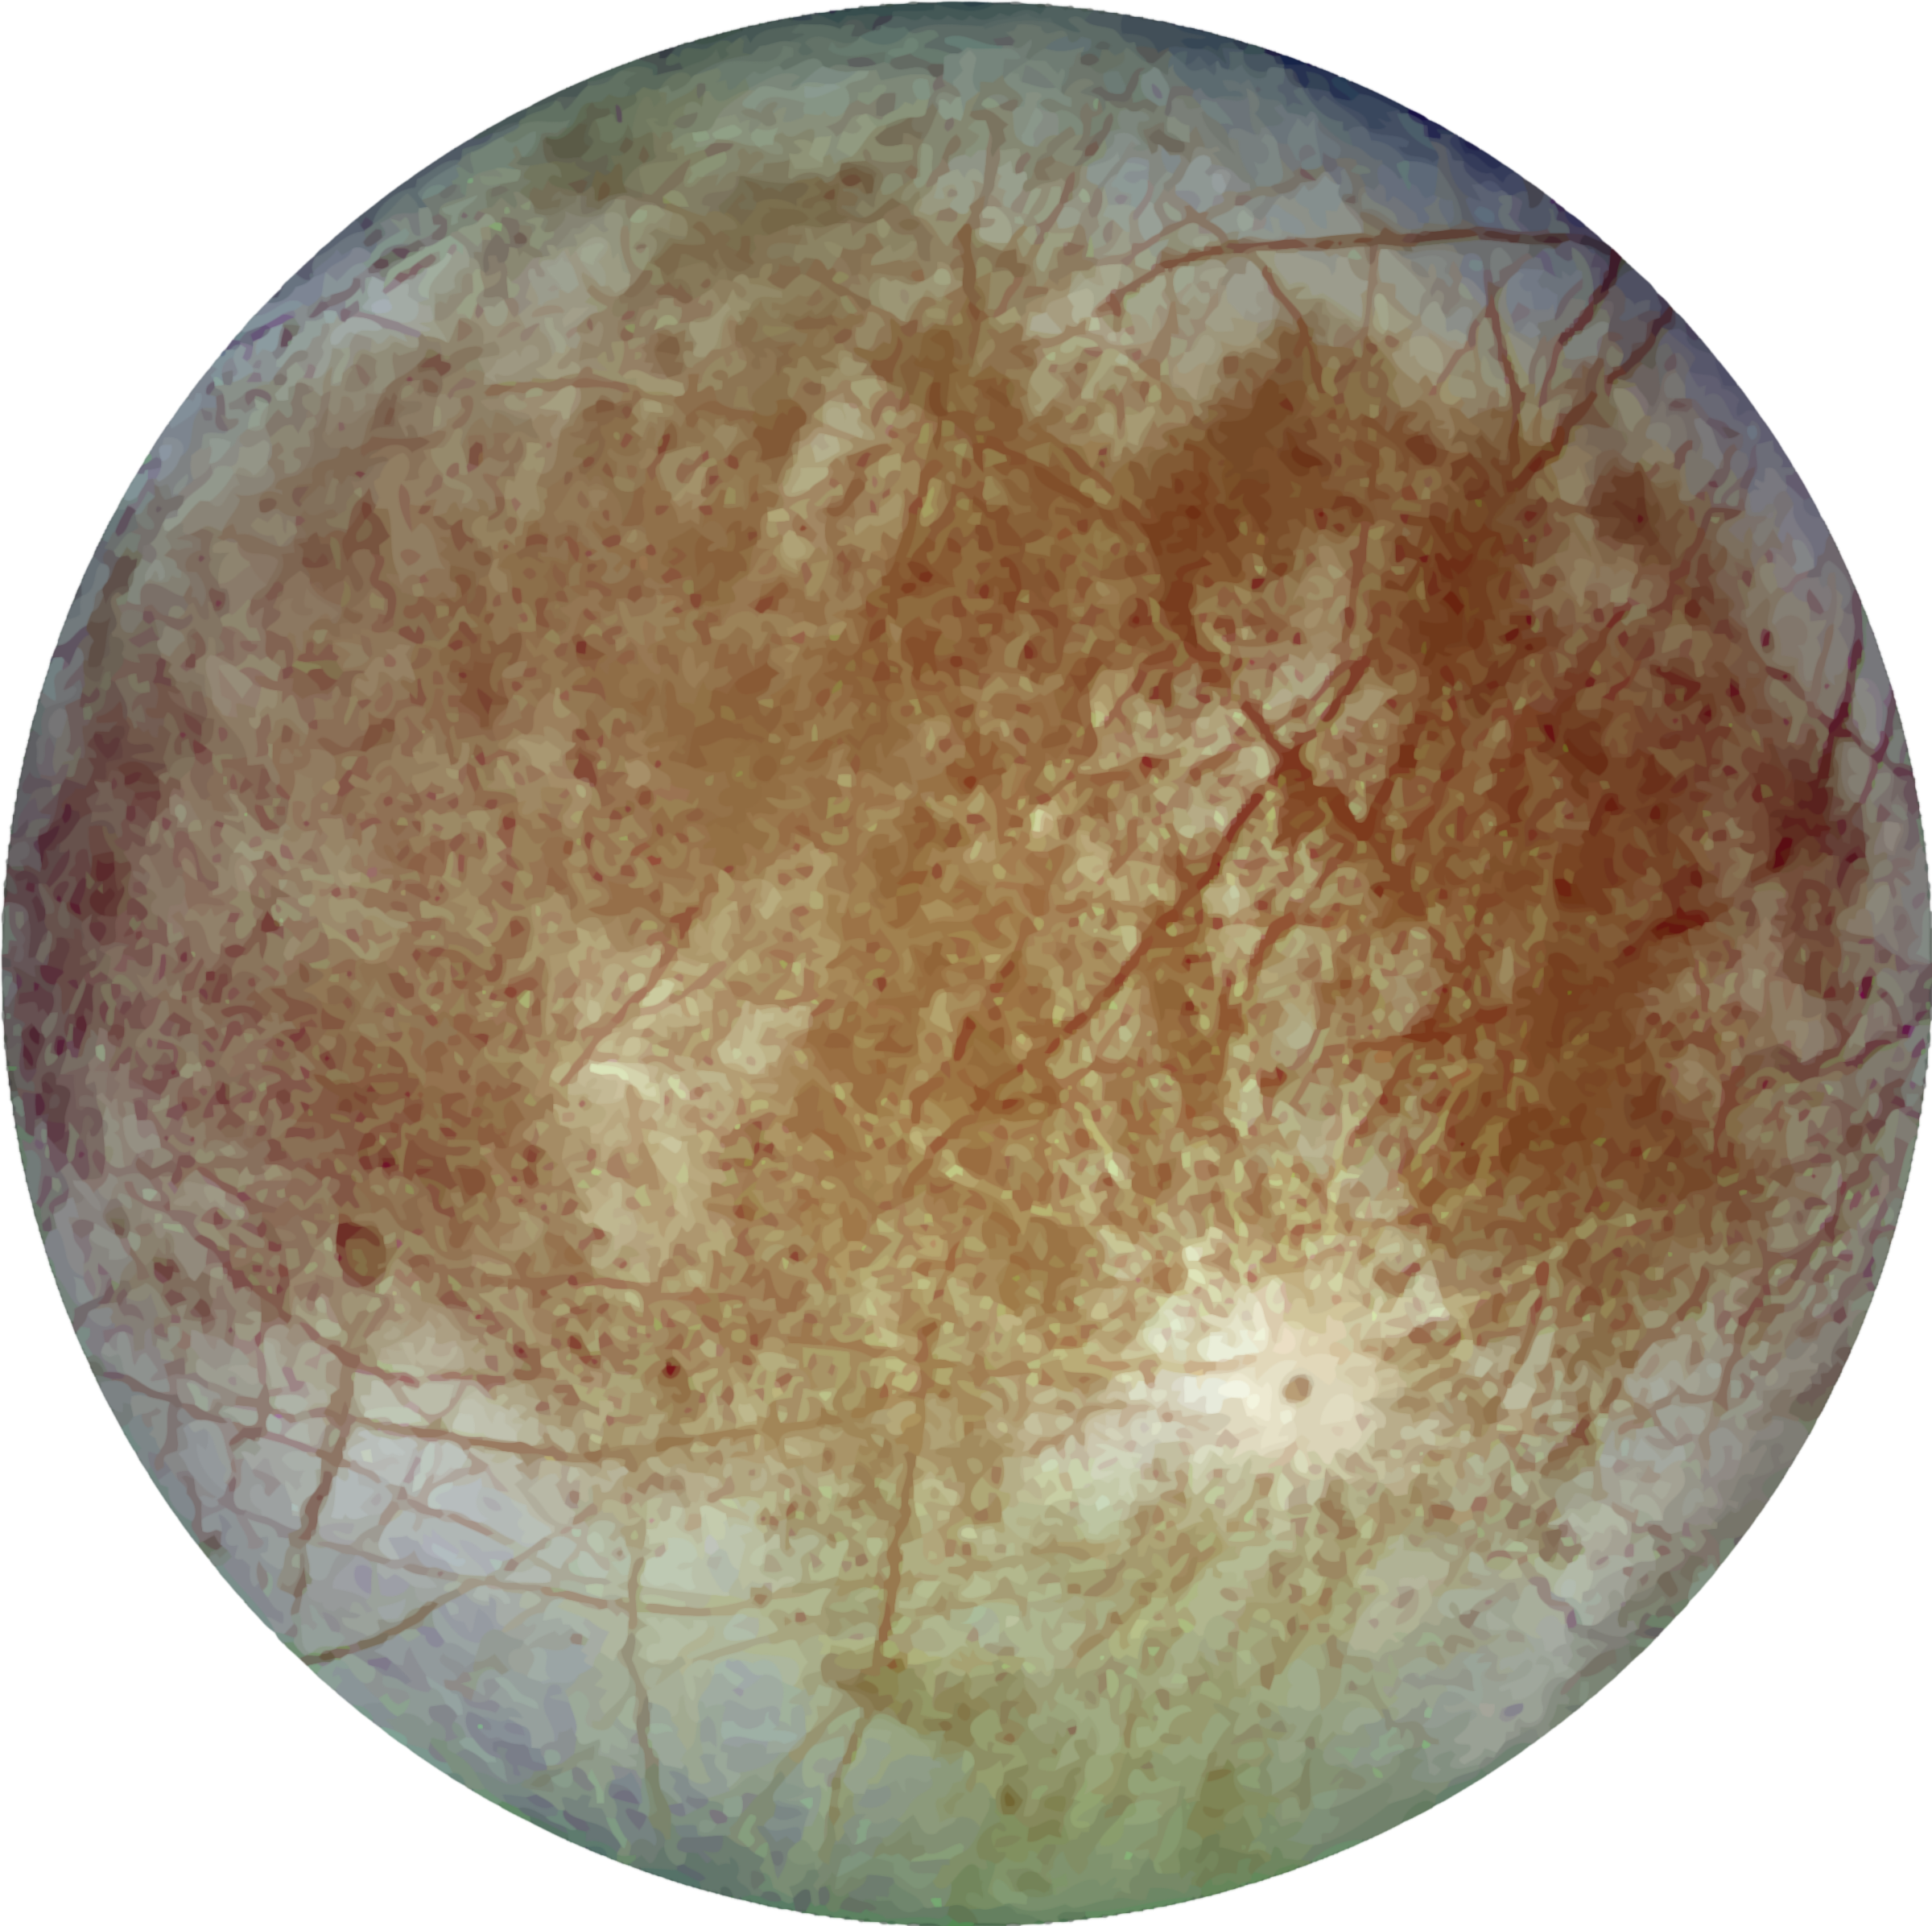 Jupiter's satellite Europa by Firkin